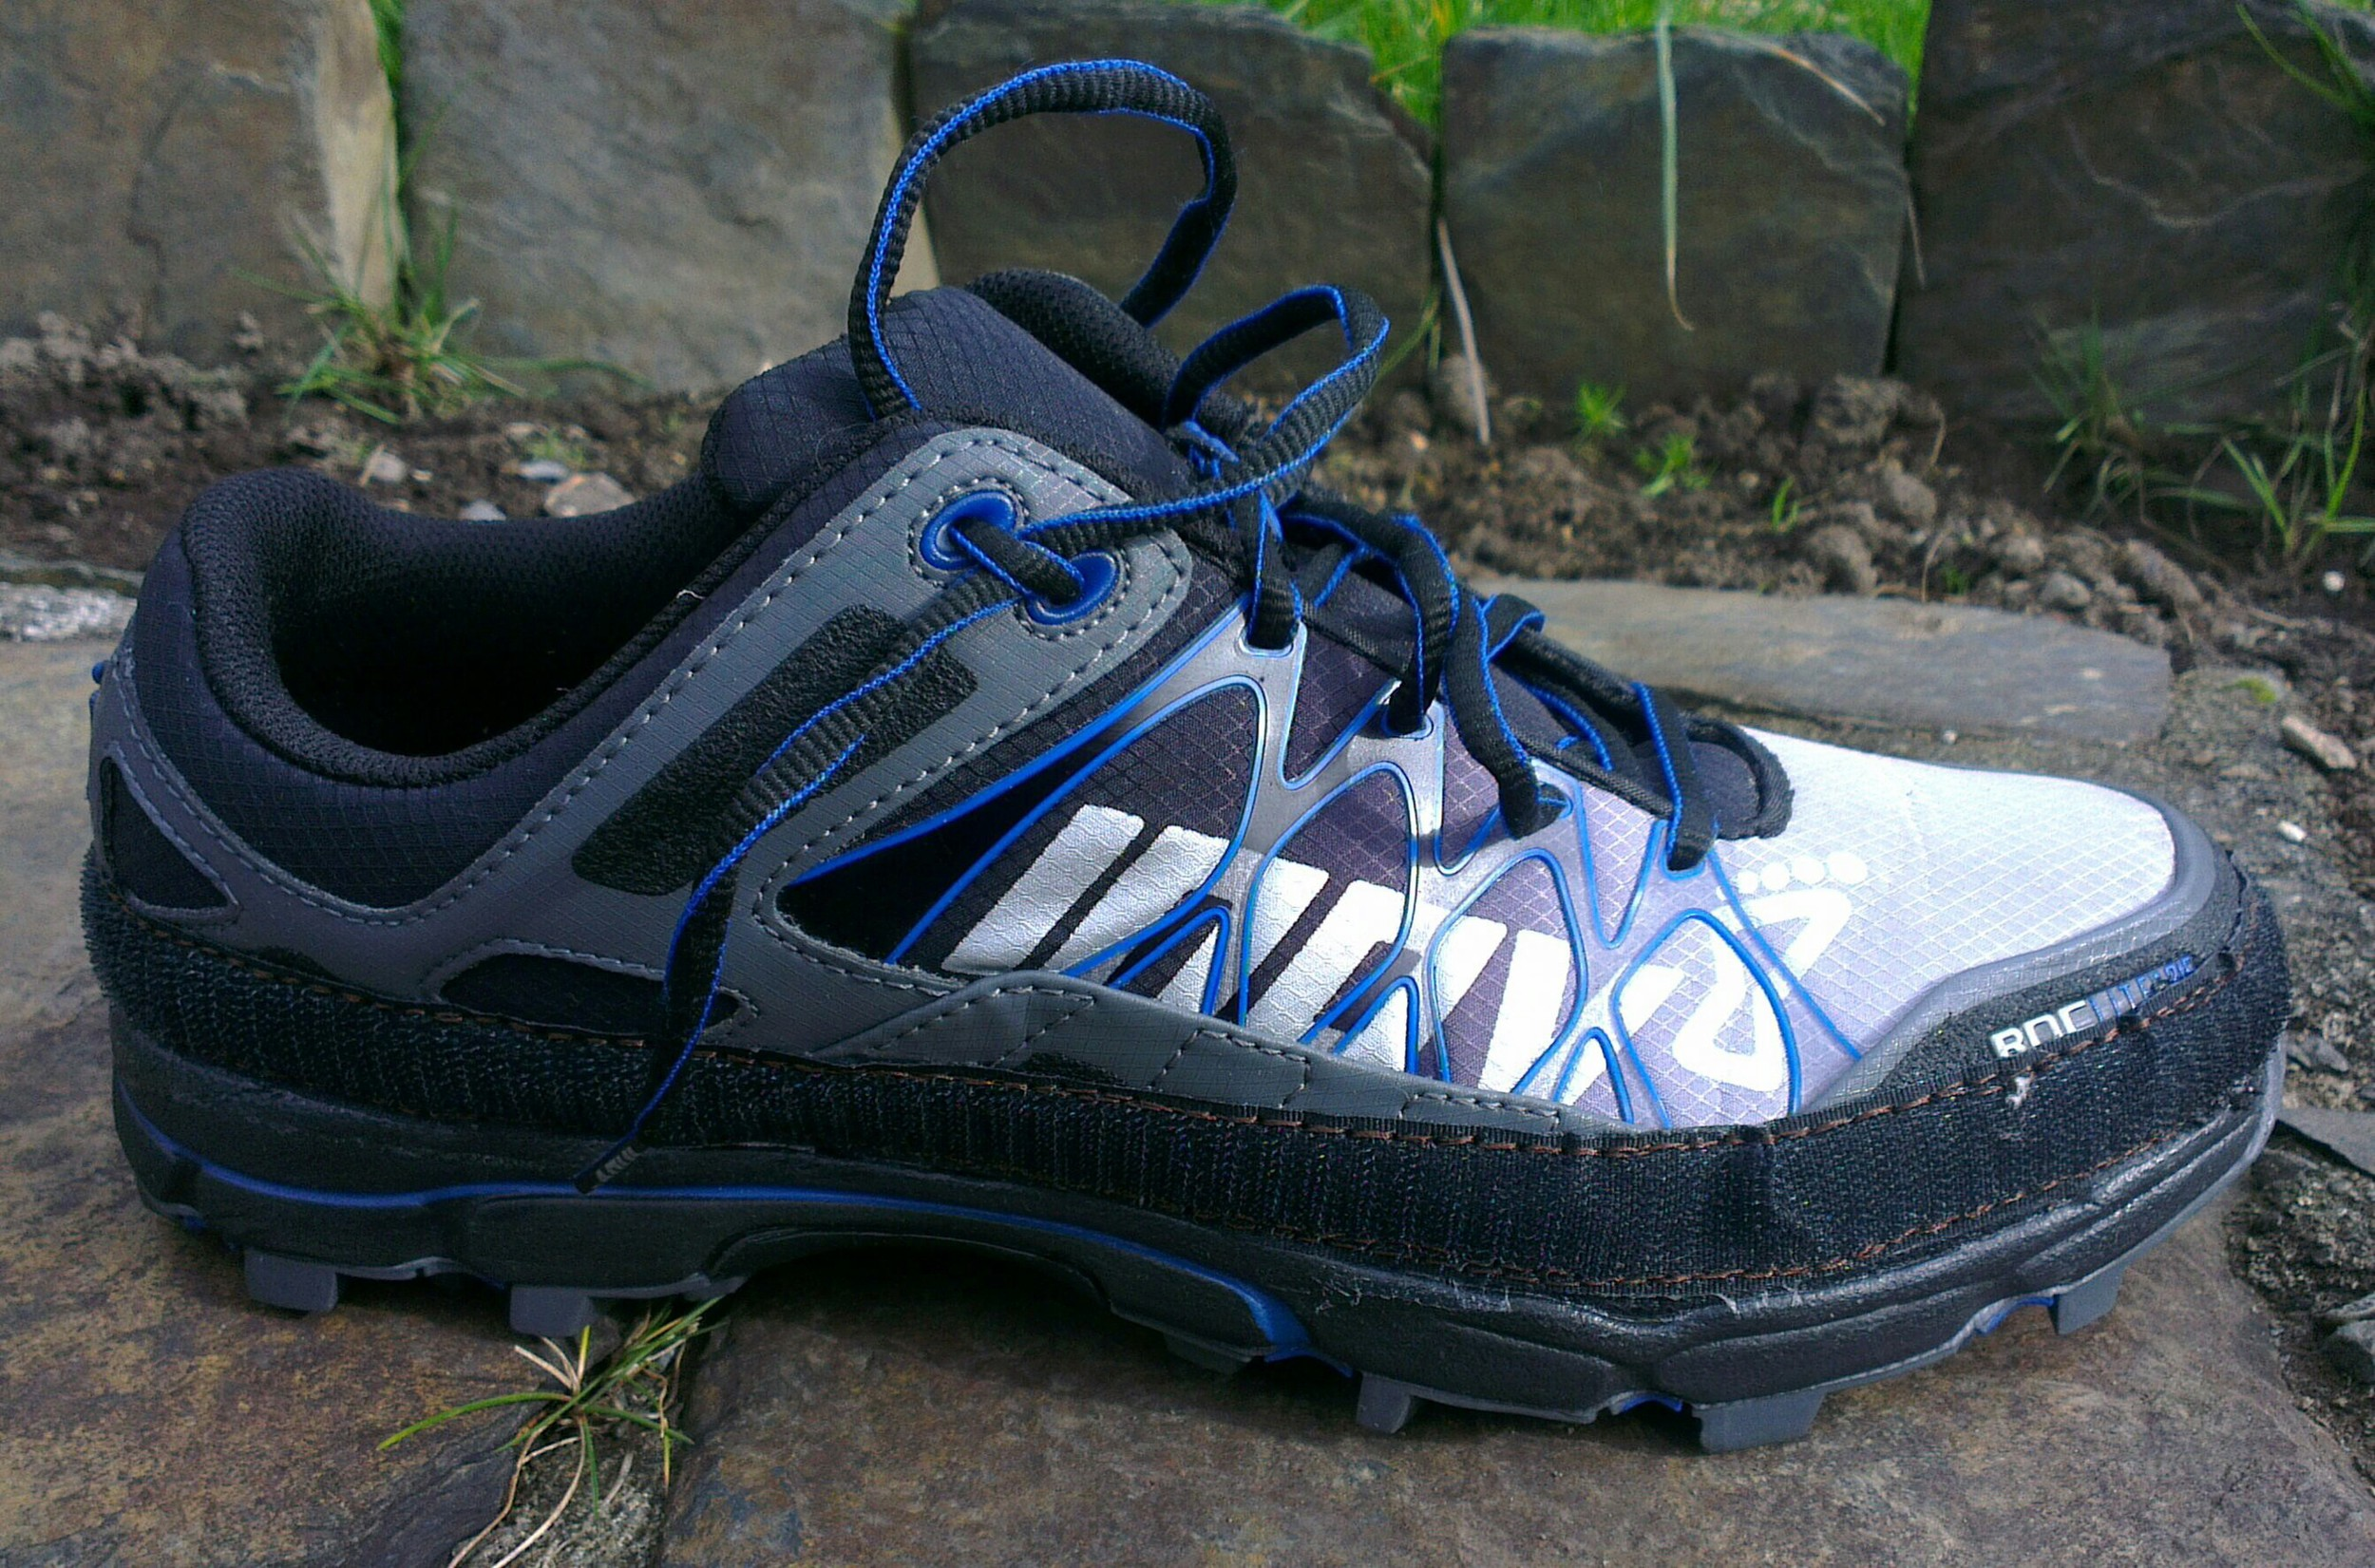 Inov8 Roclite 315 with gaiter velcro attached